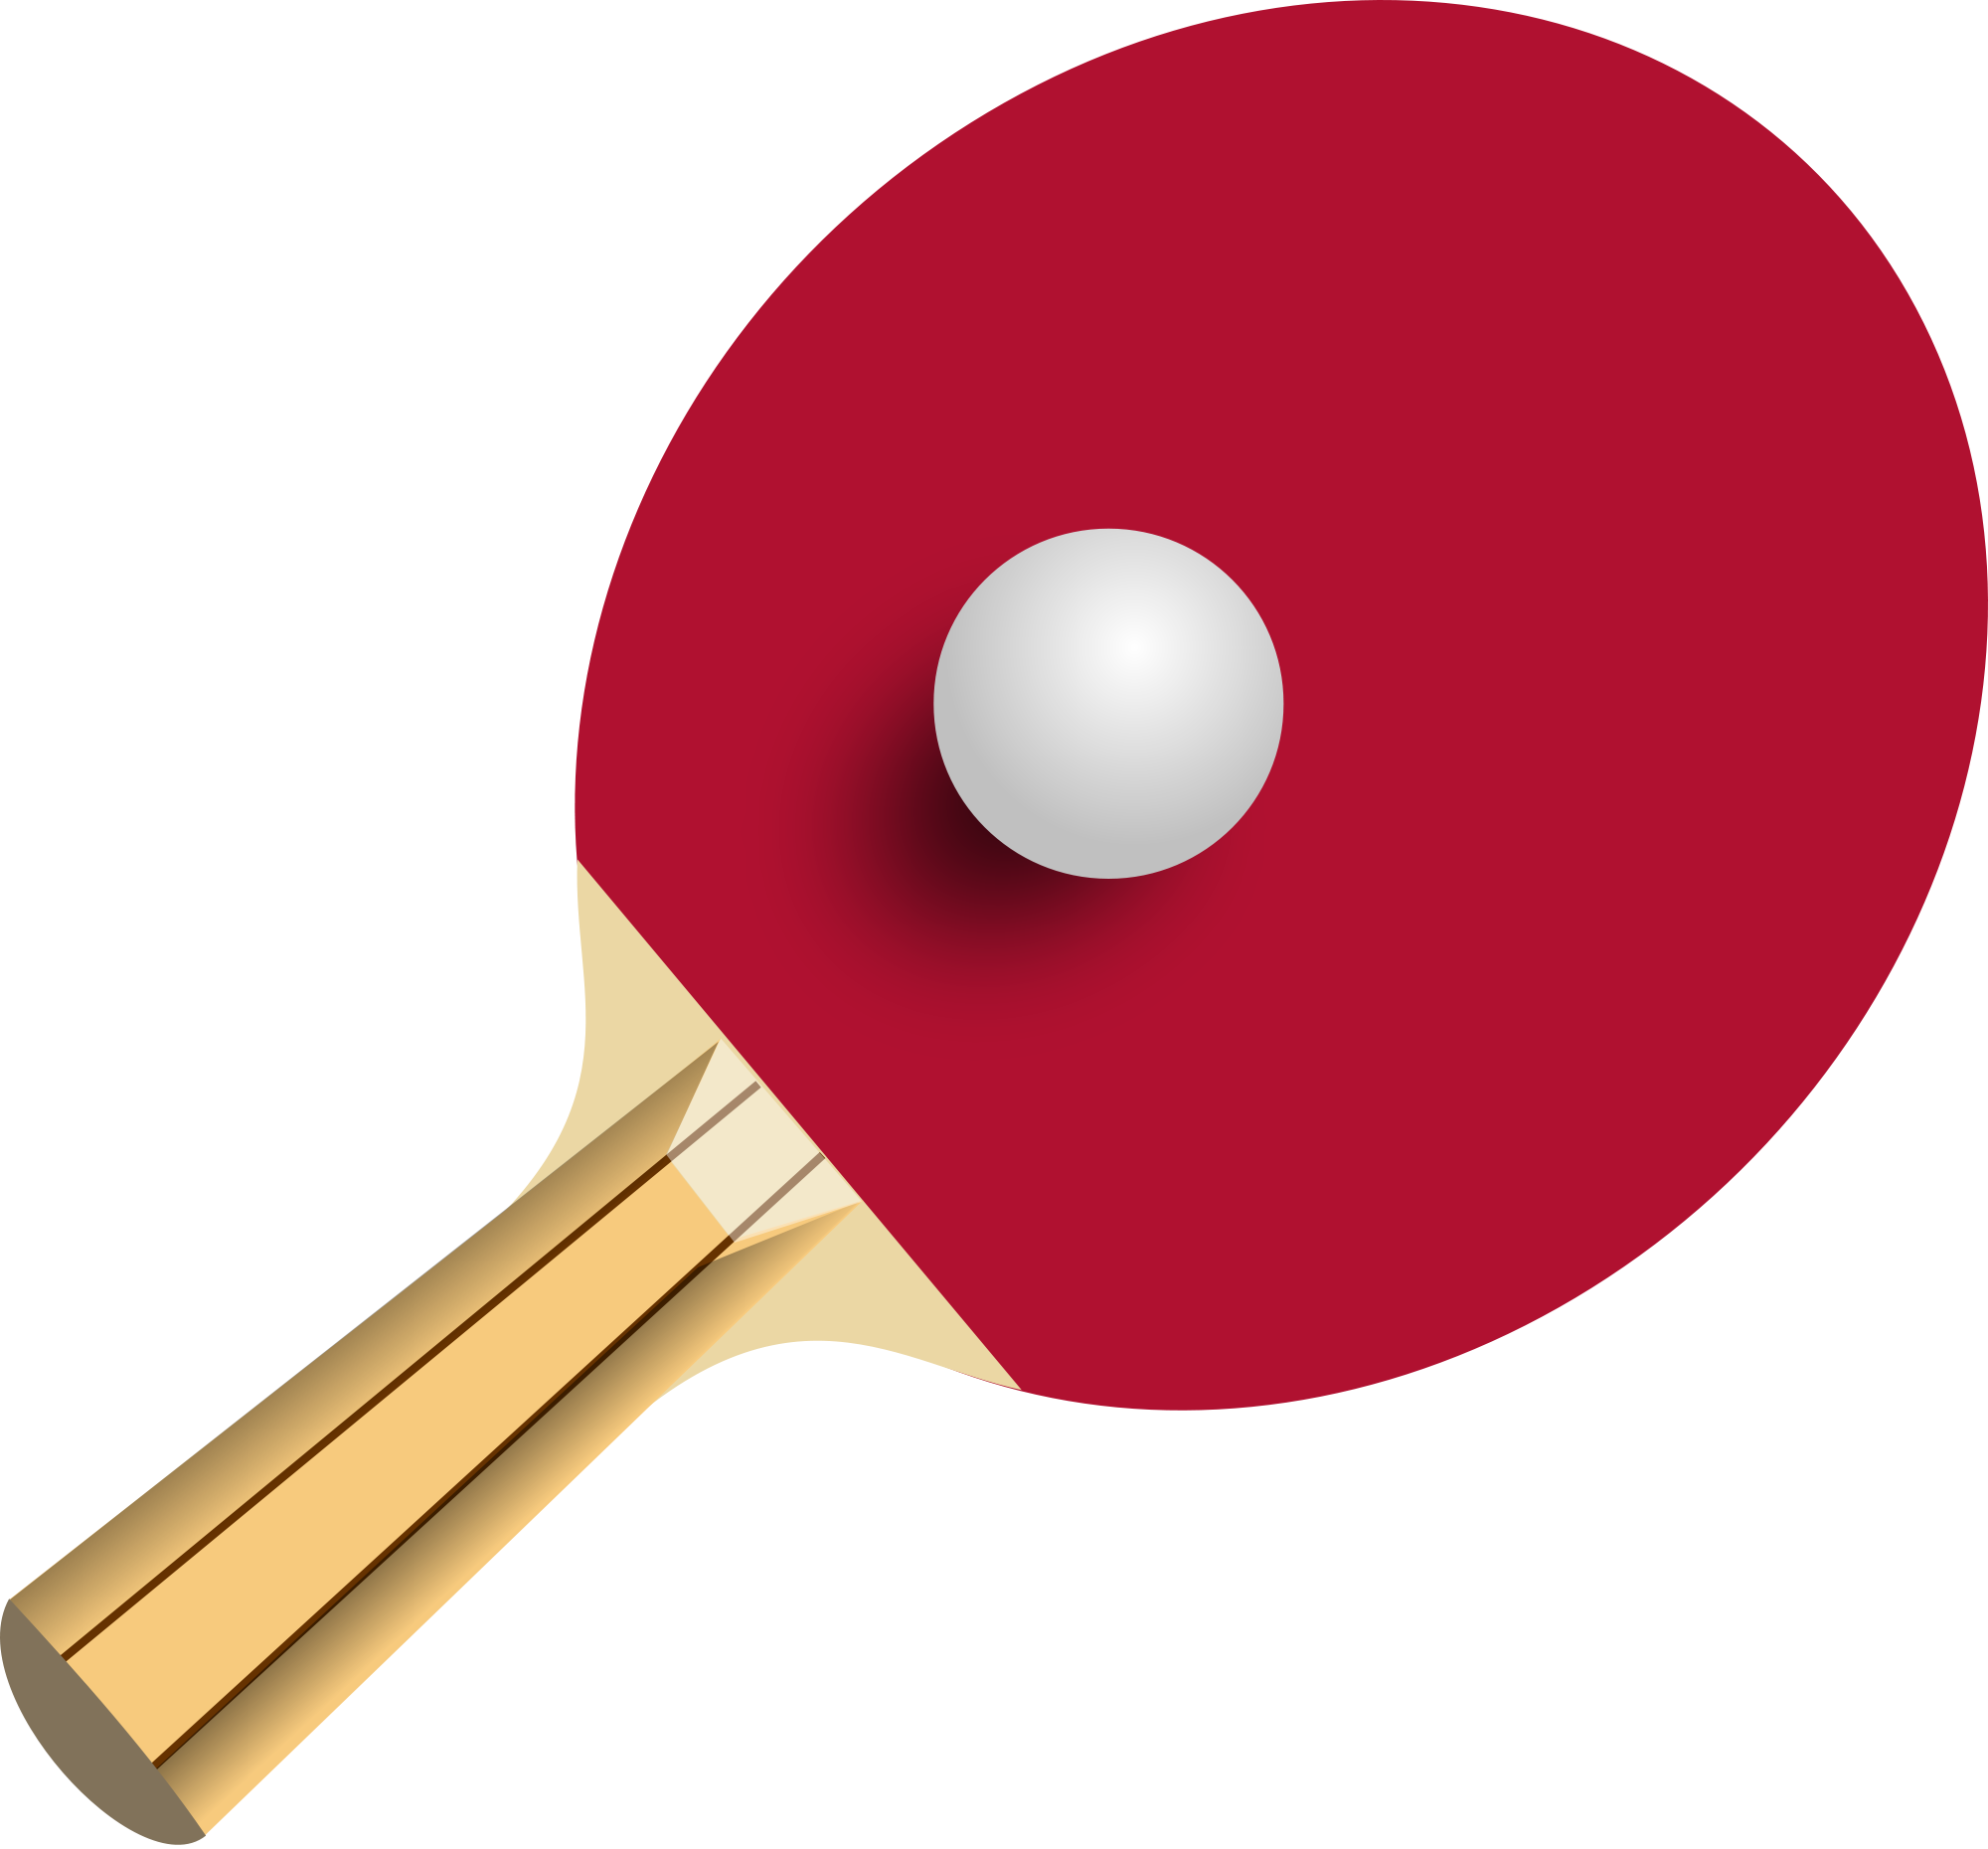 Ping Pong Png Image Table Tennis Ping Pong Table Tennis Bats